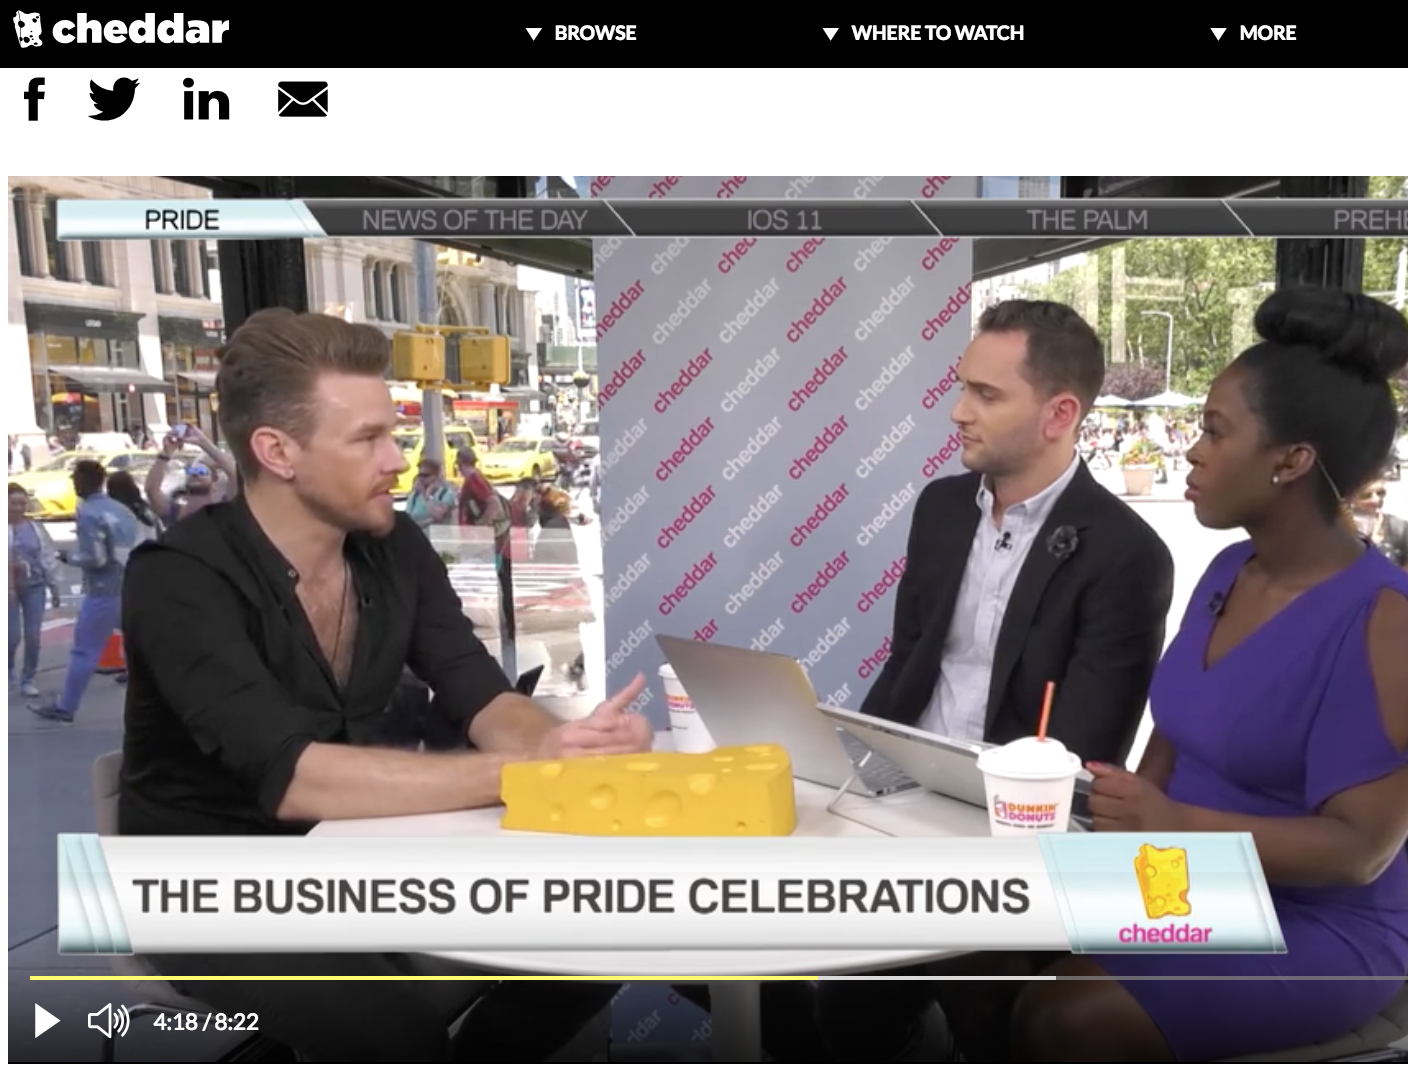 CHEDDAR  (LIVE VIDEO SEGMENT)   I chat with the  Cheddar  news team about how businesses and branded content align with Pride month.